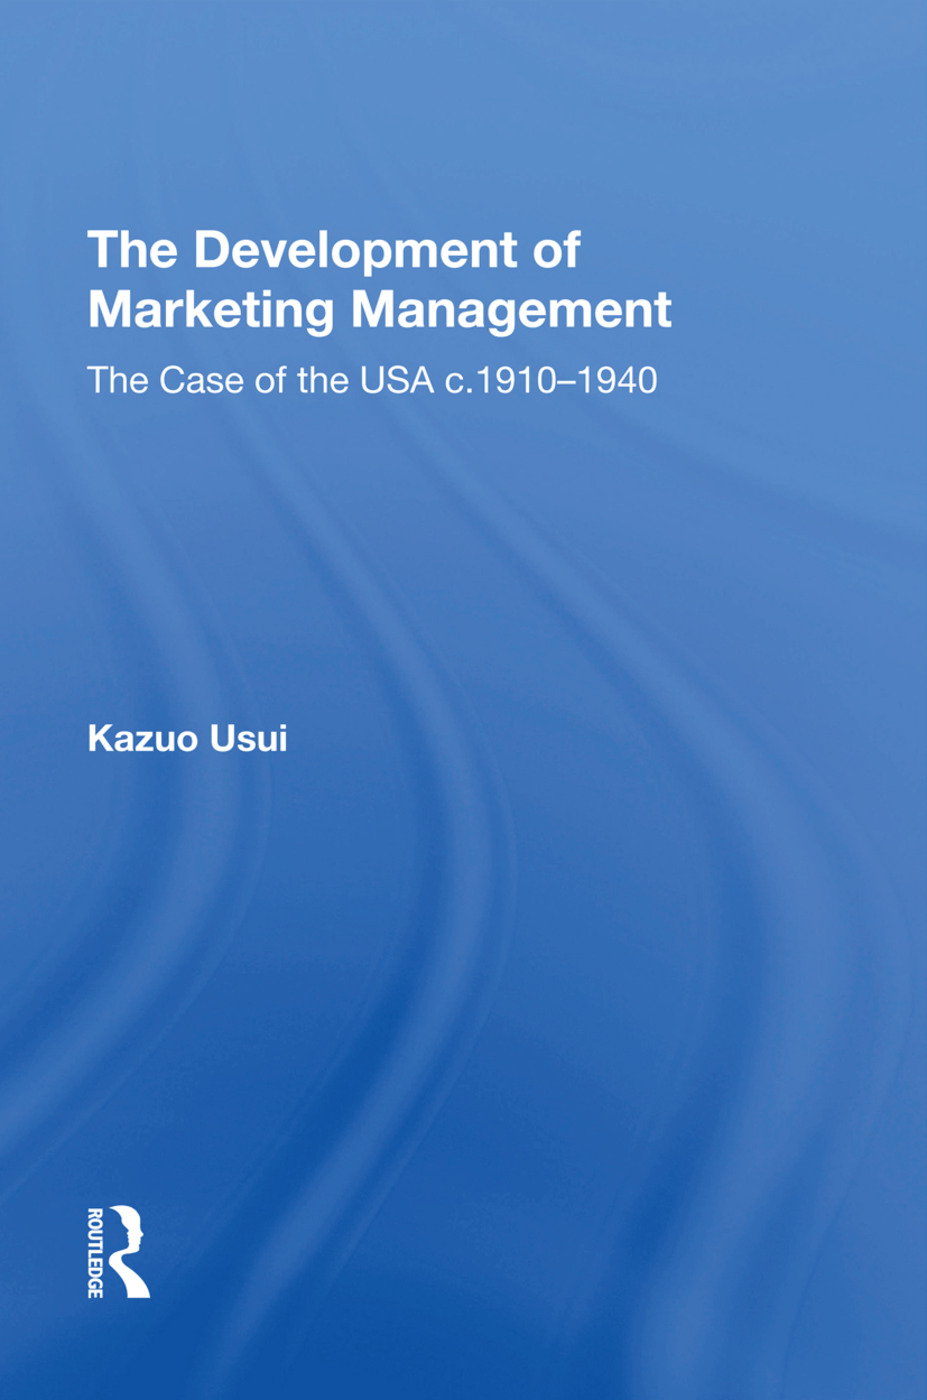 The Development of Marketing Management